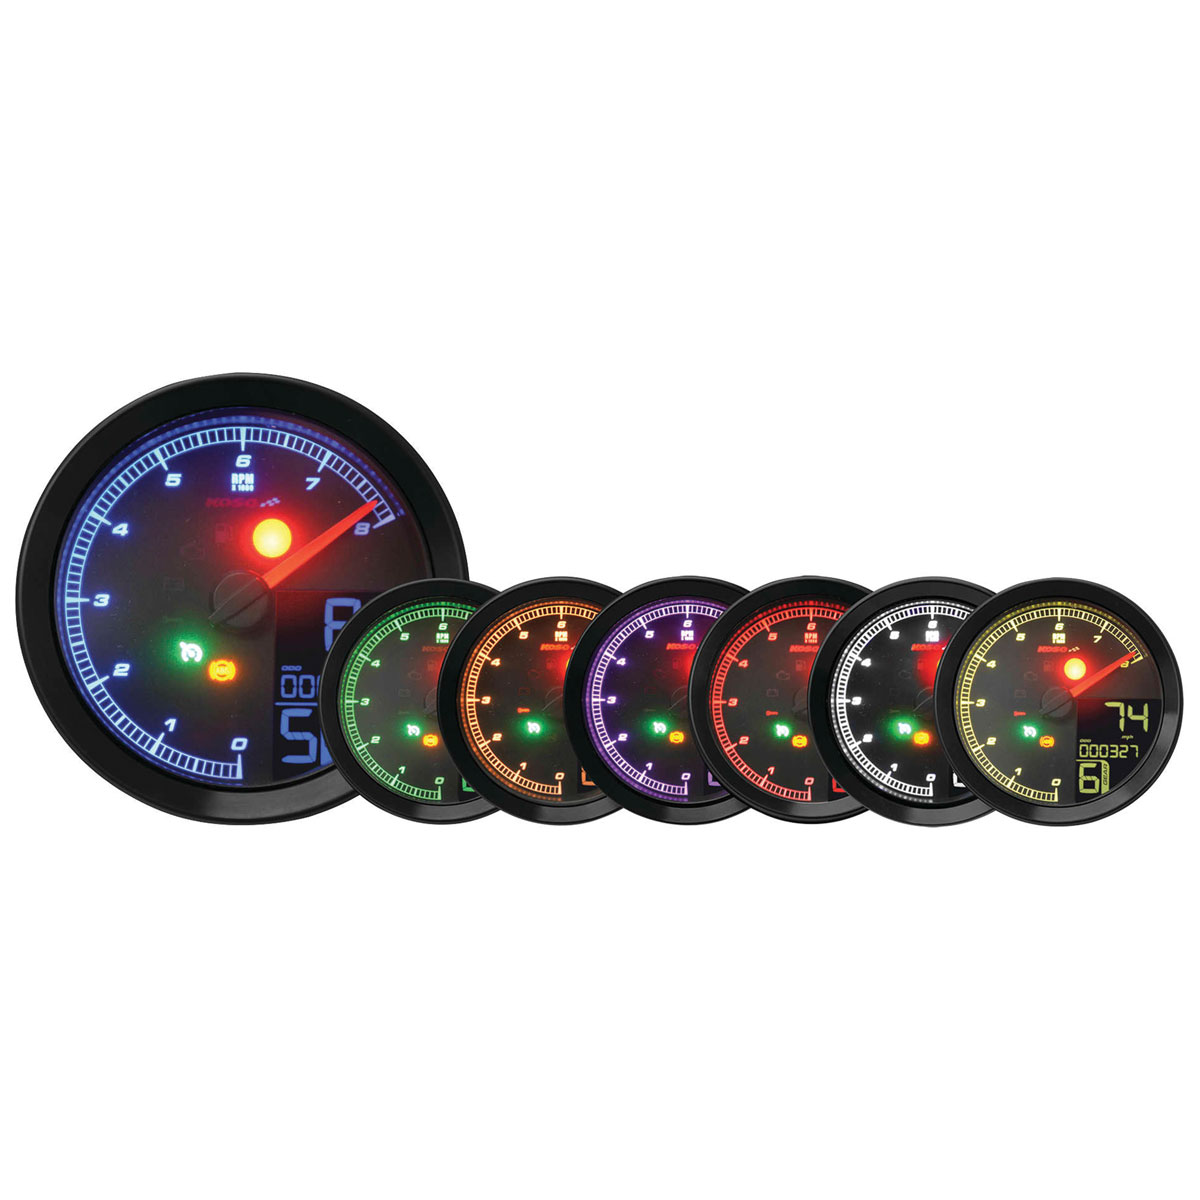 Koso Black HD-04 Series Gauge